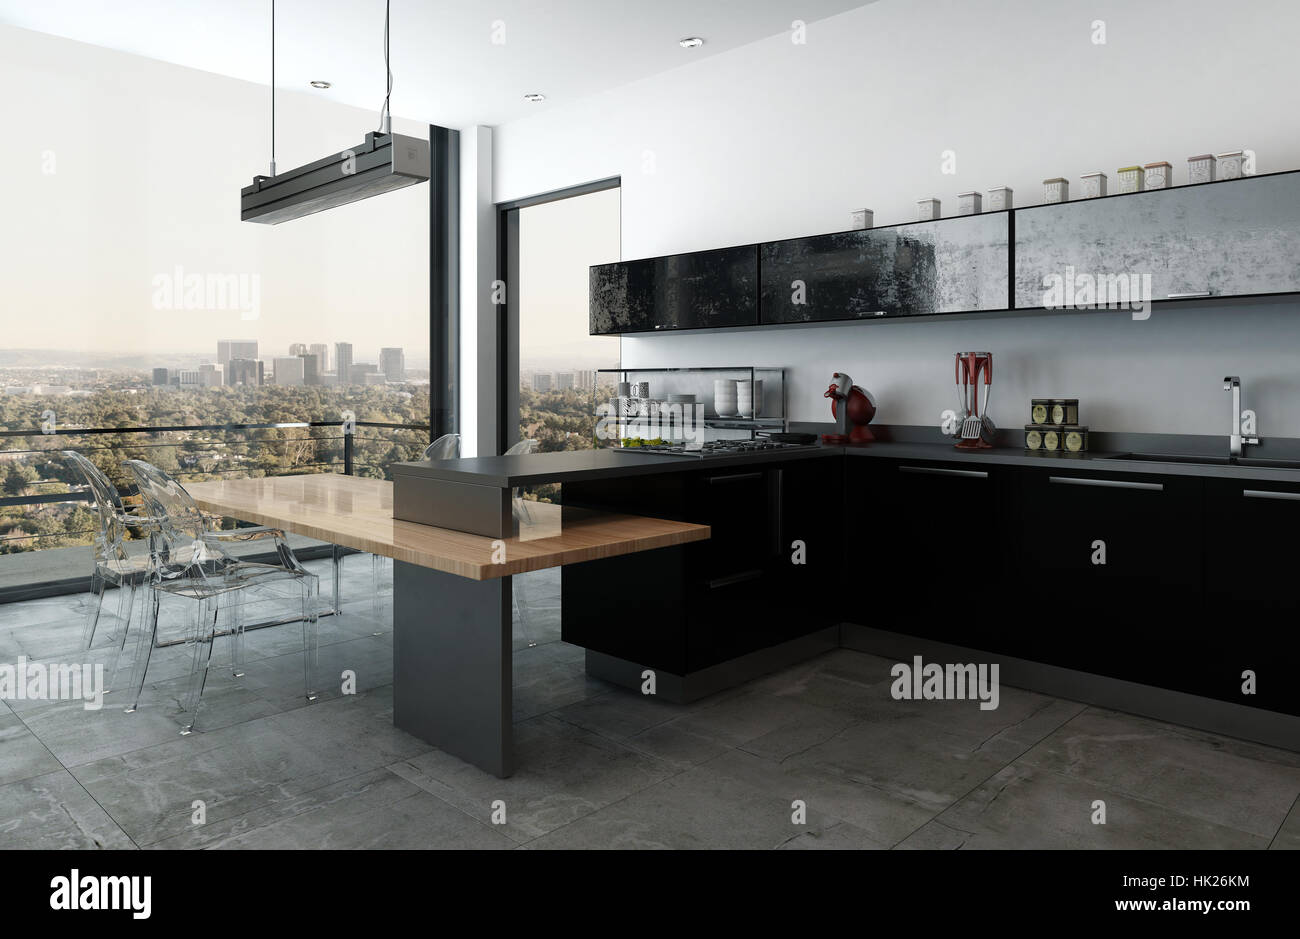 Modern luxury kitchen in a highrise apartment with bar counter